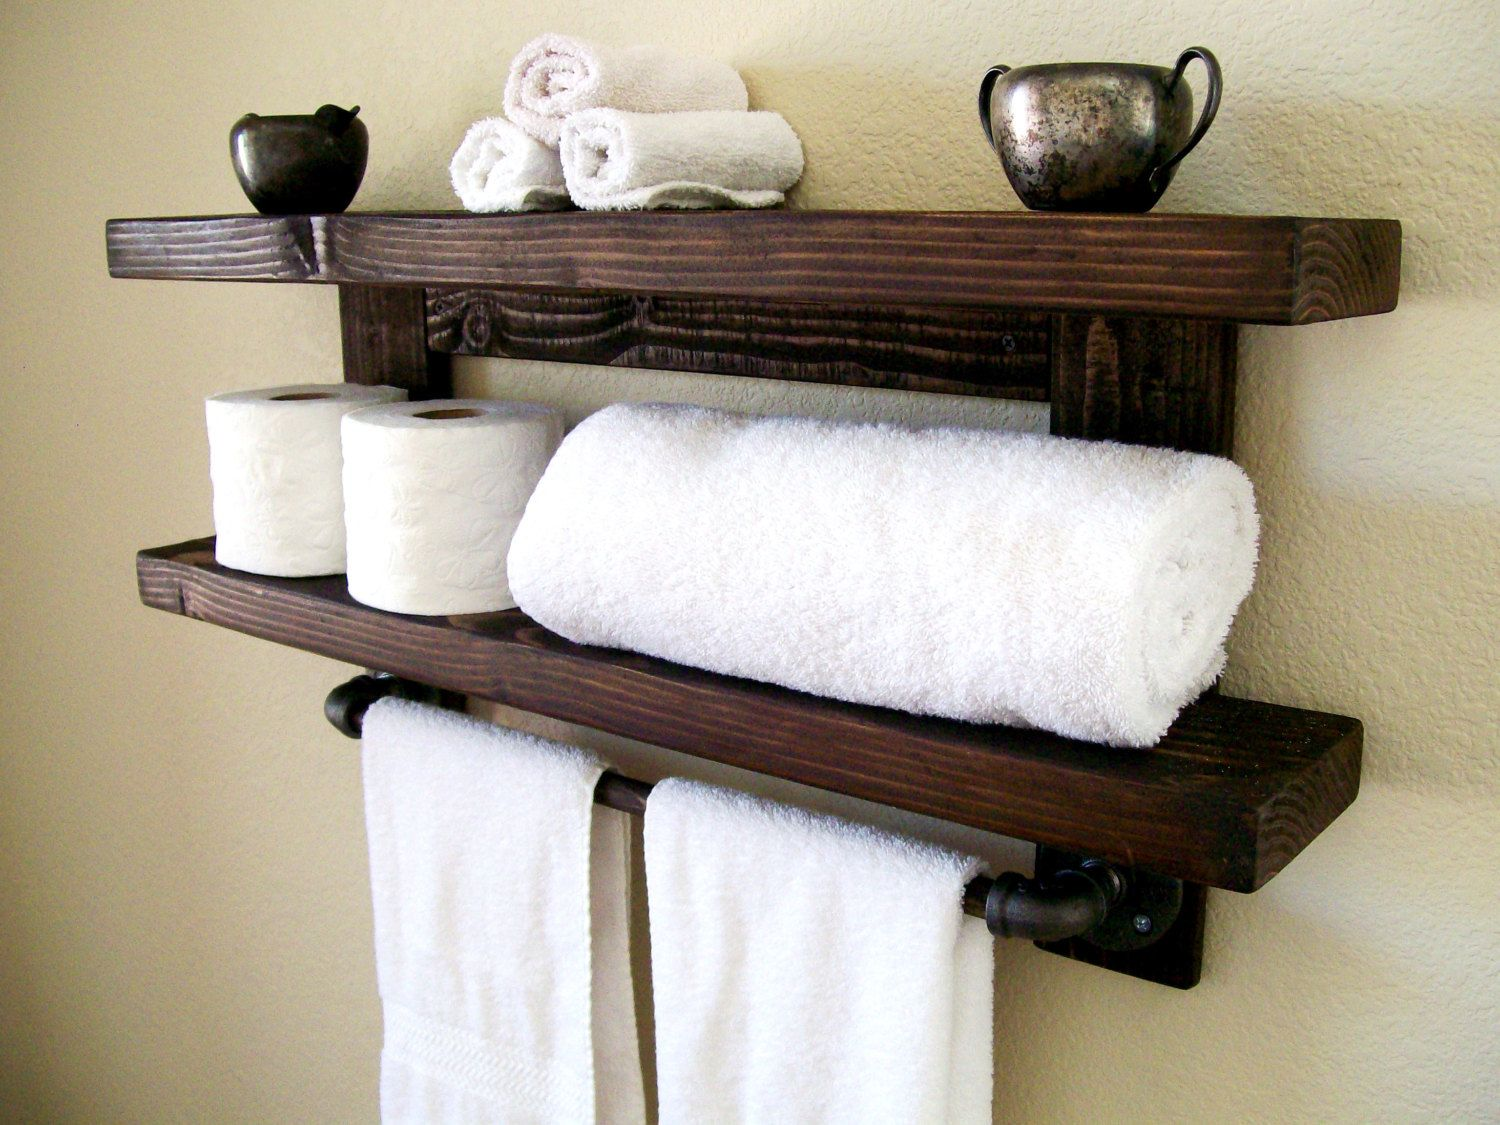 Floating Shelves Bathroom Shelf Towel Rack Floating Shelf Wall Shelf ...